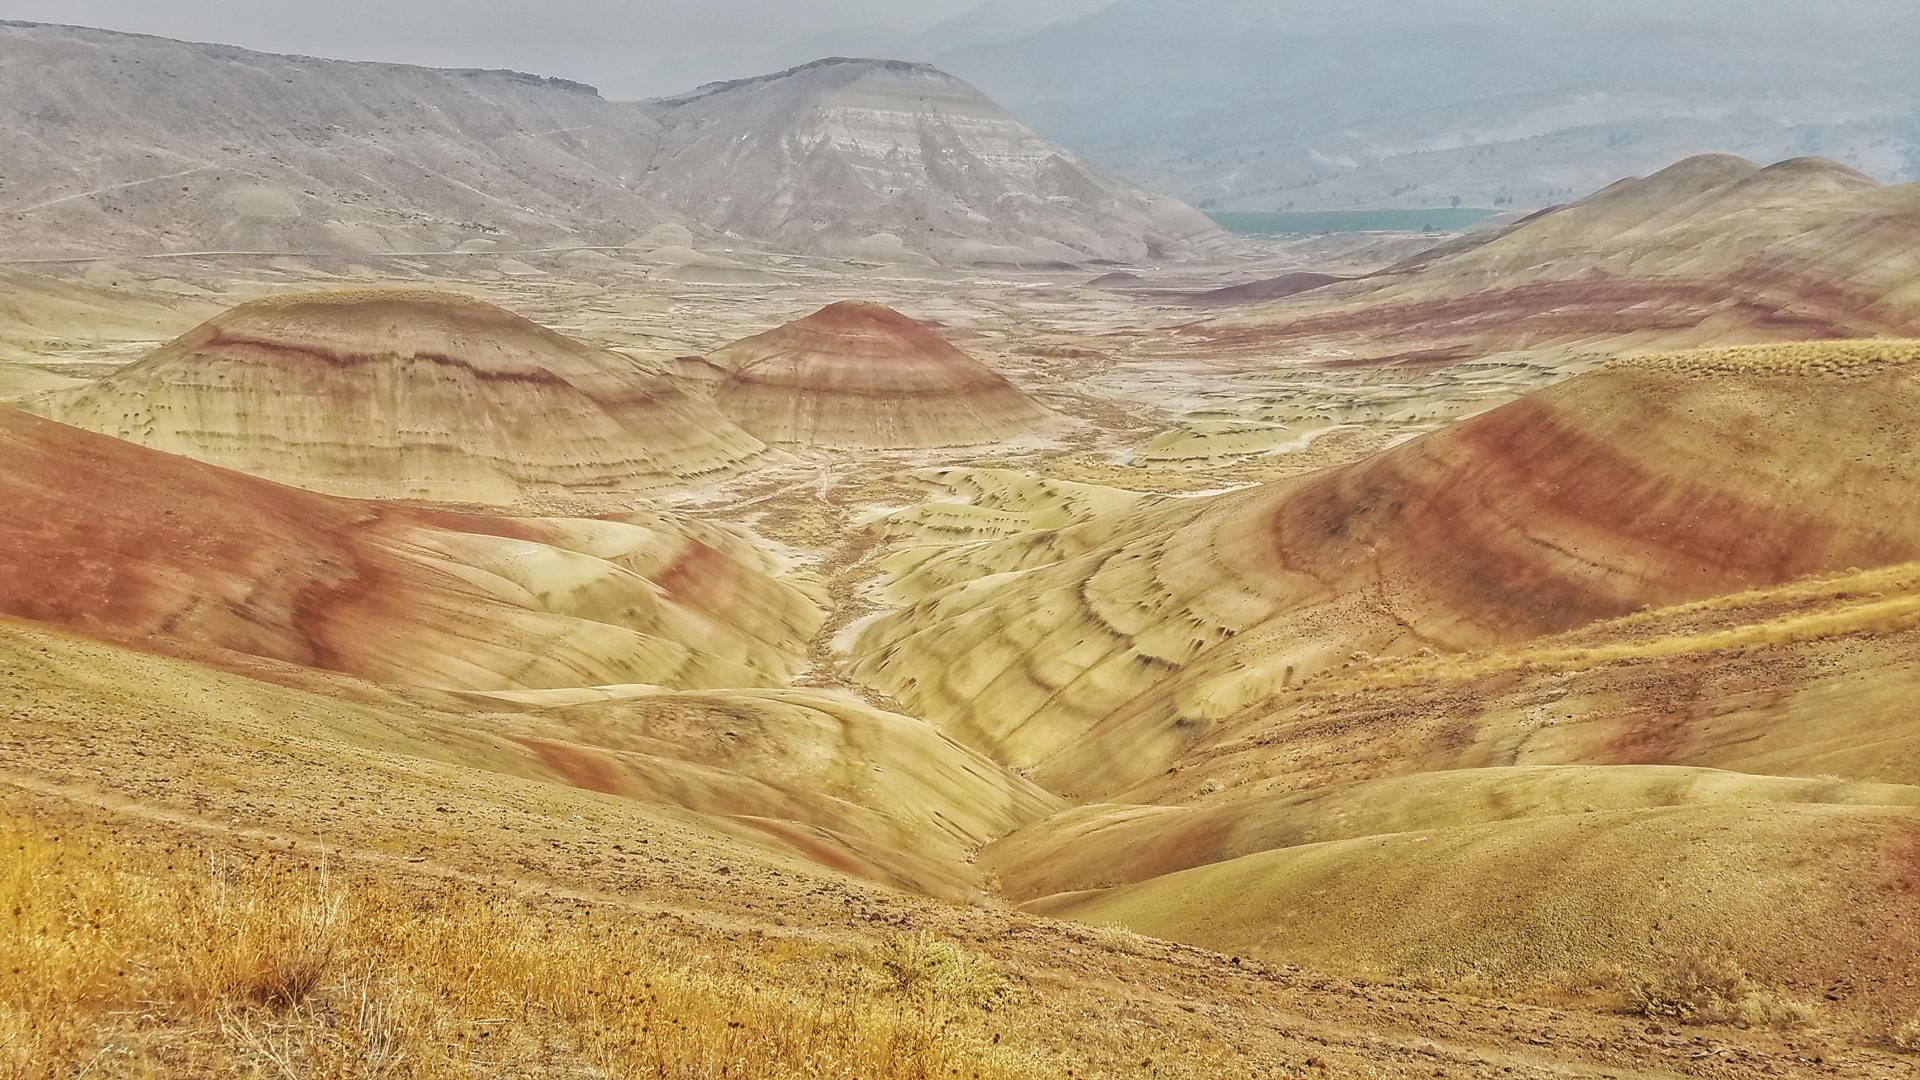 Painted Hills Oregon – John Day Fossil Beds National Monument